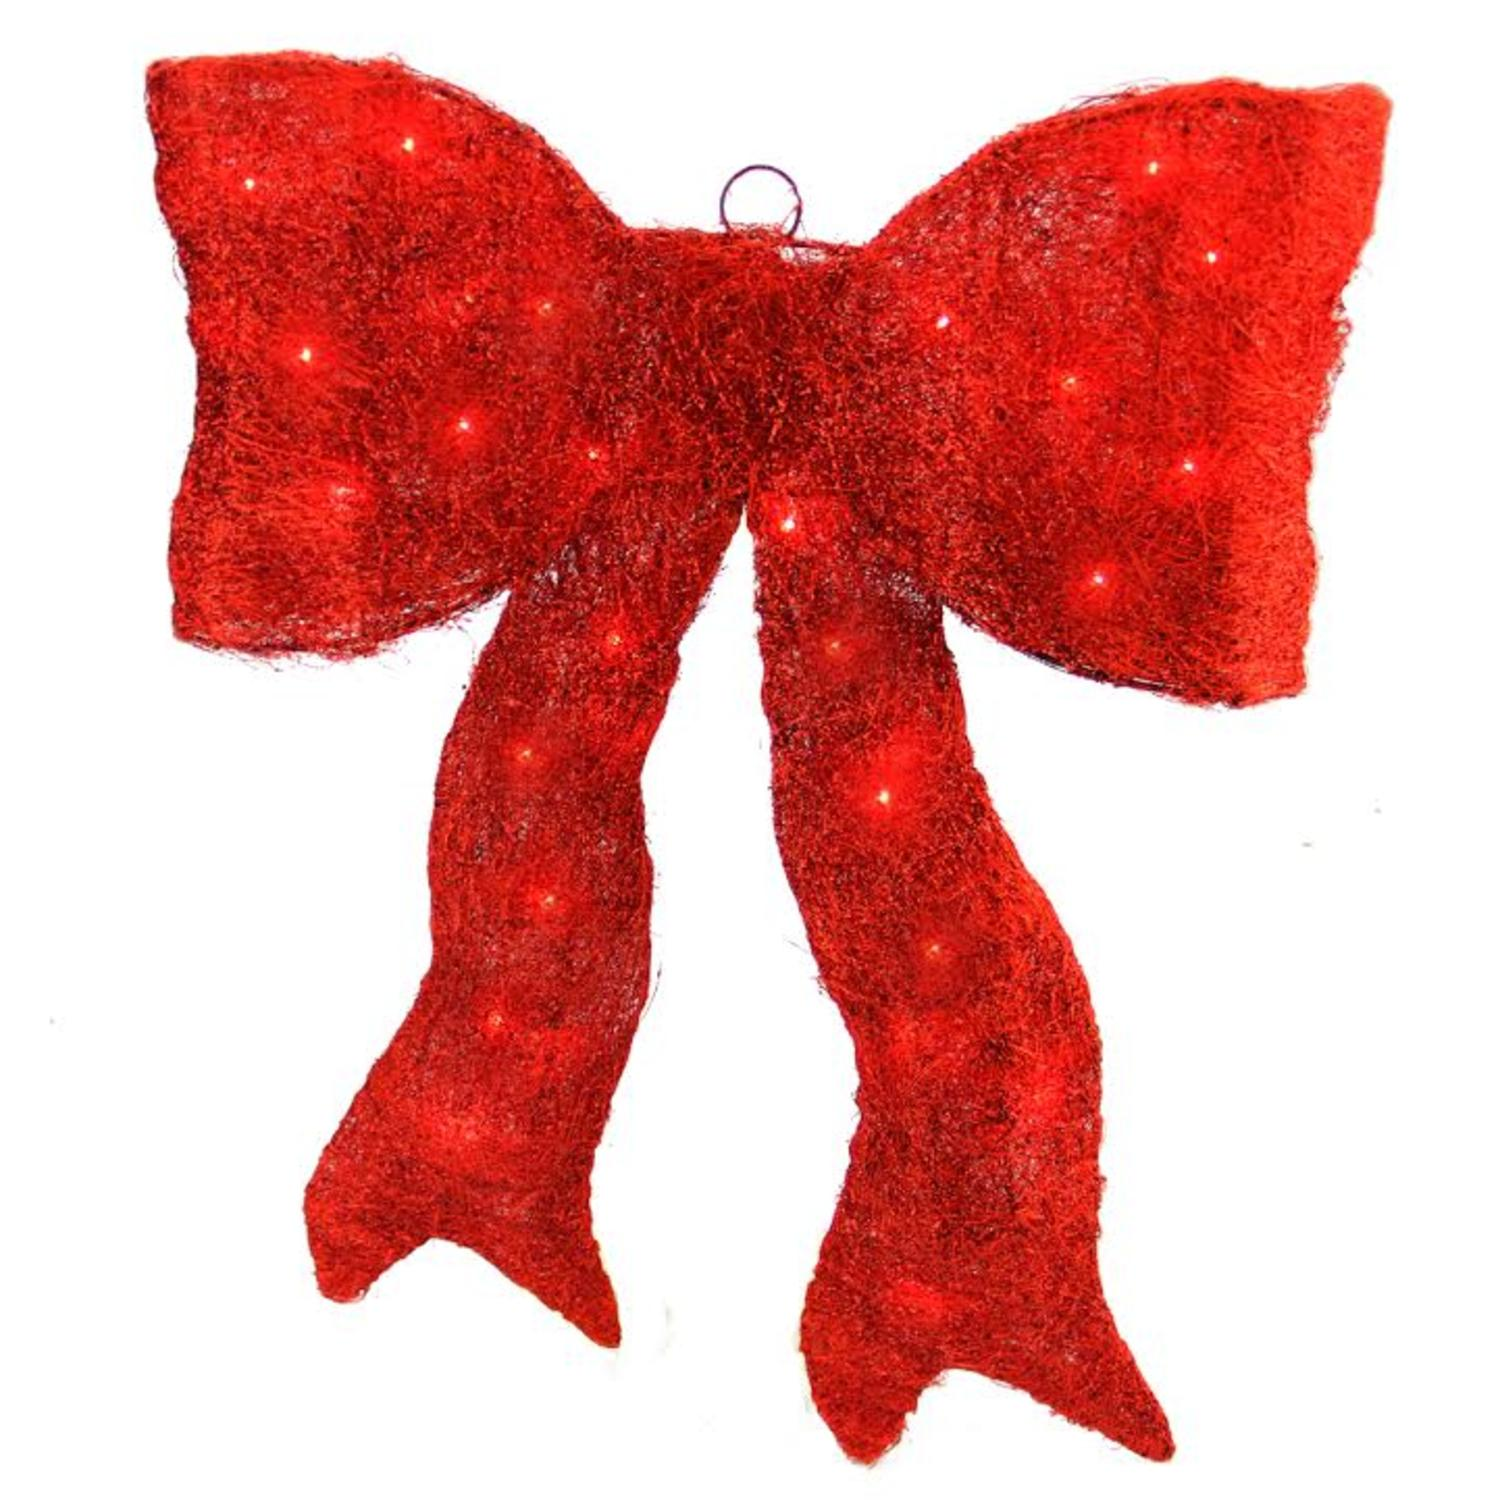 "18"" Lighted Sparkling Red Whimsical Sisal Bow Christmas Yard Art Decoration"